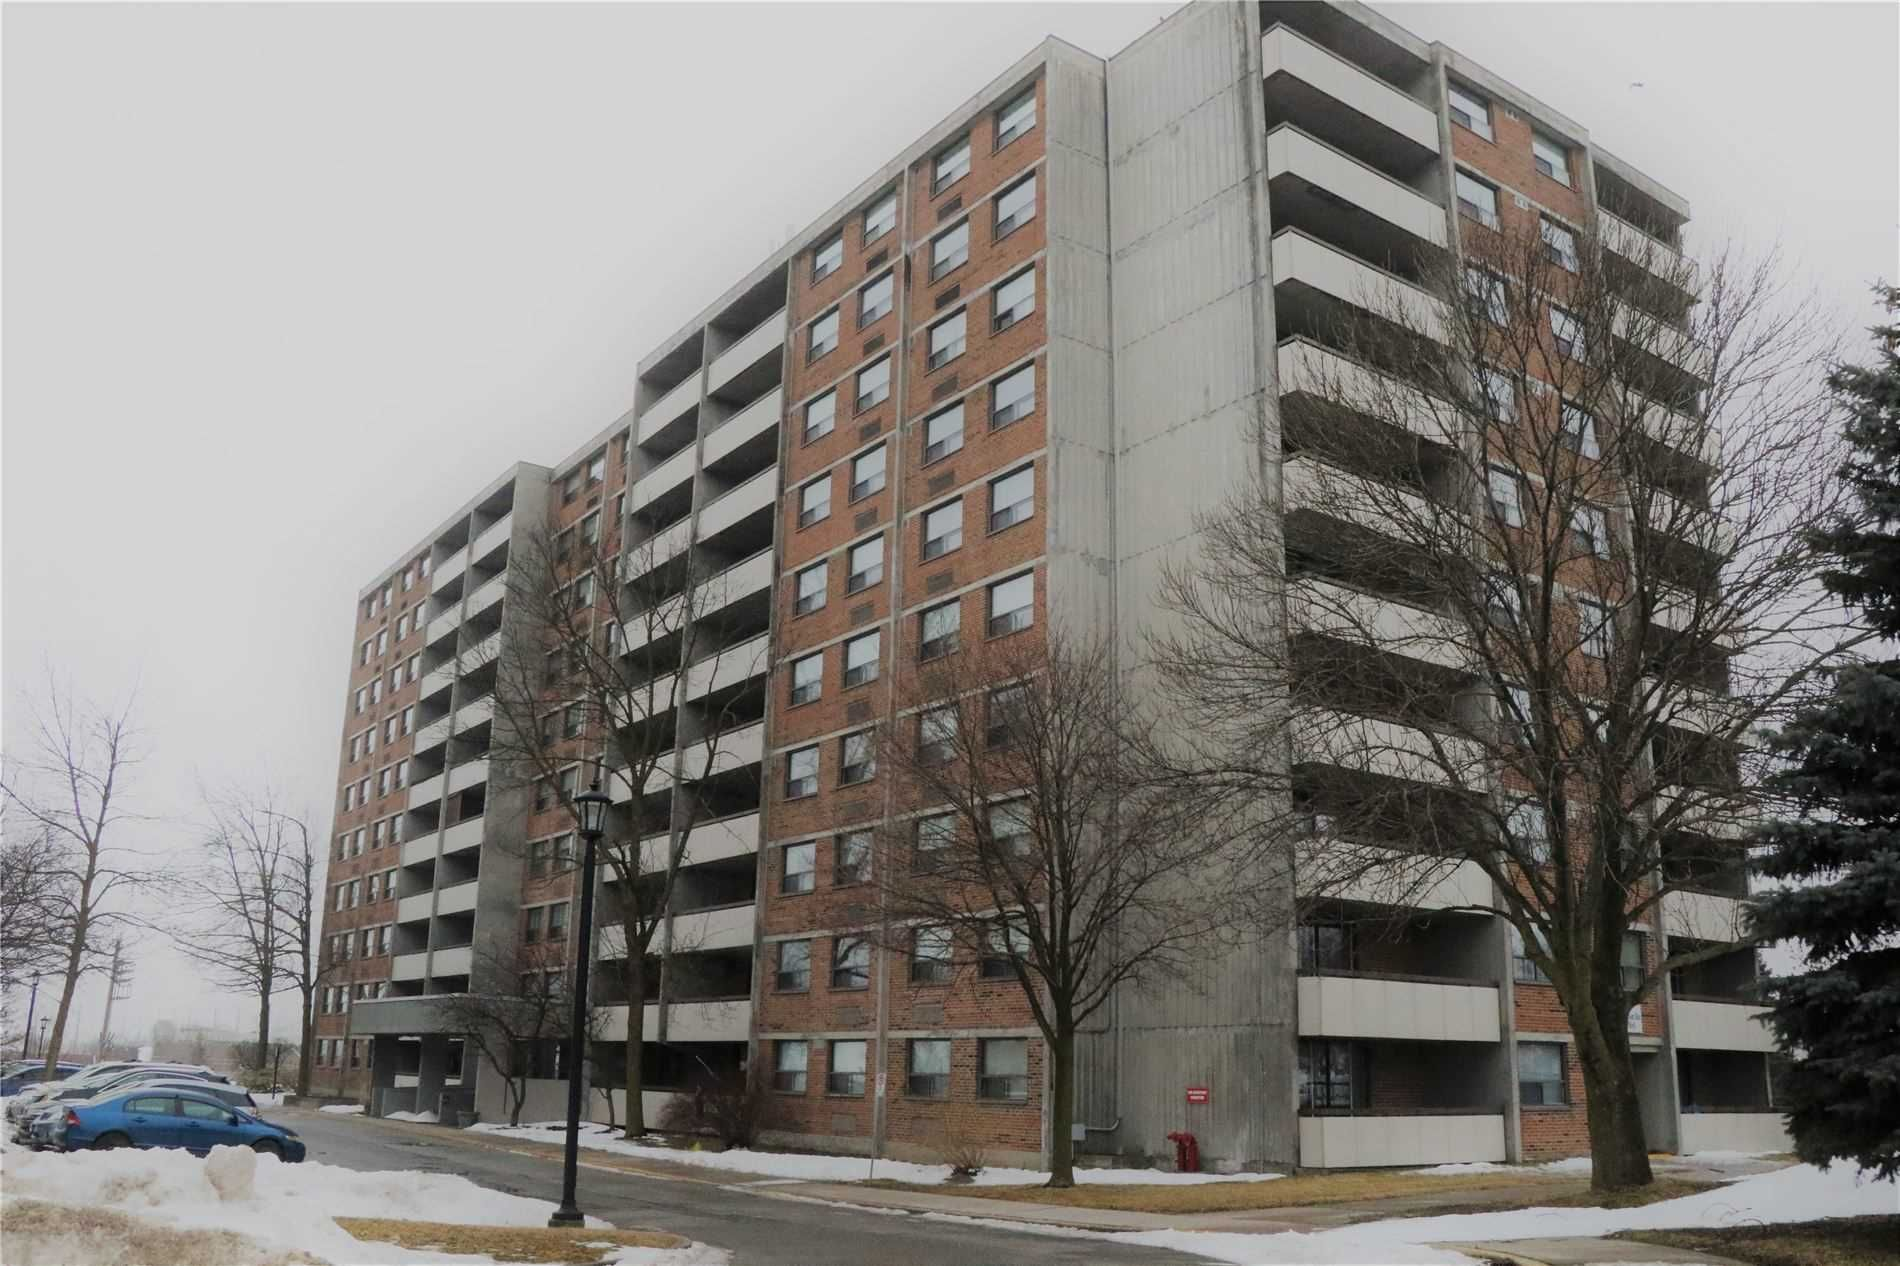 Main Photo: 801 20 William Roe Boulevard in Newmarket: Central Newmarket Condo for sale : MLS®# N4710016